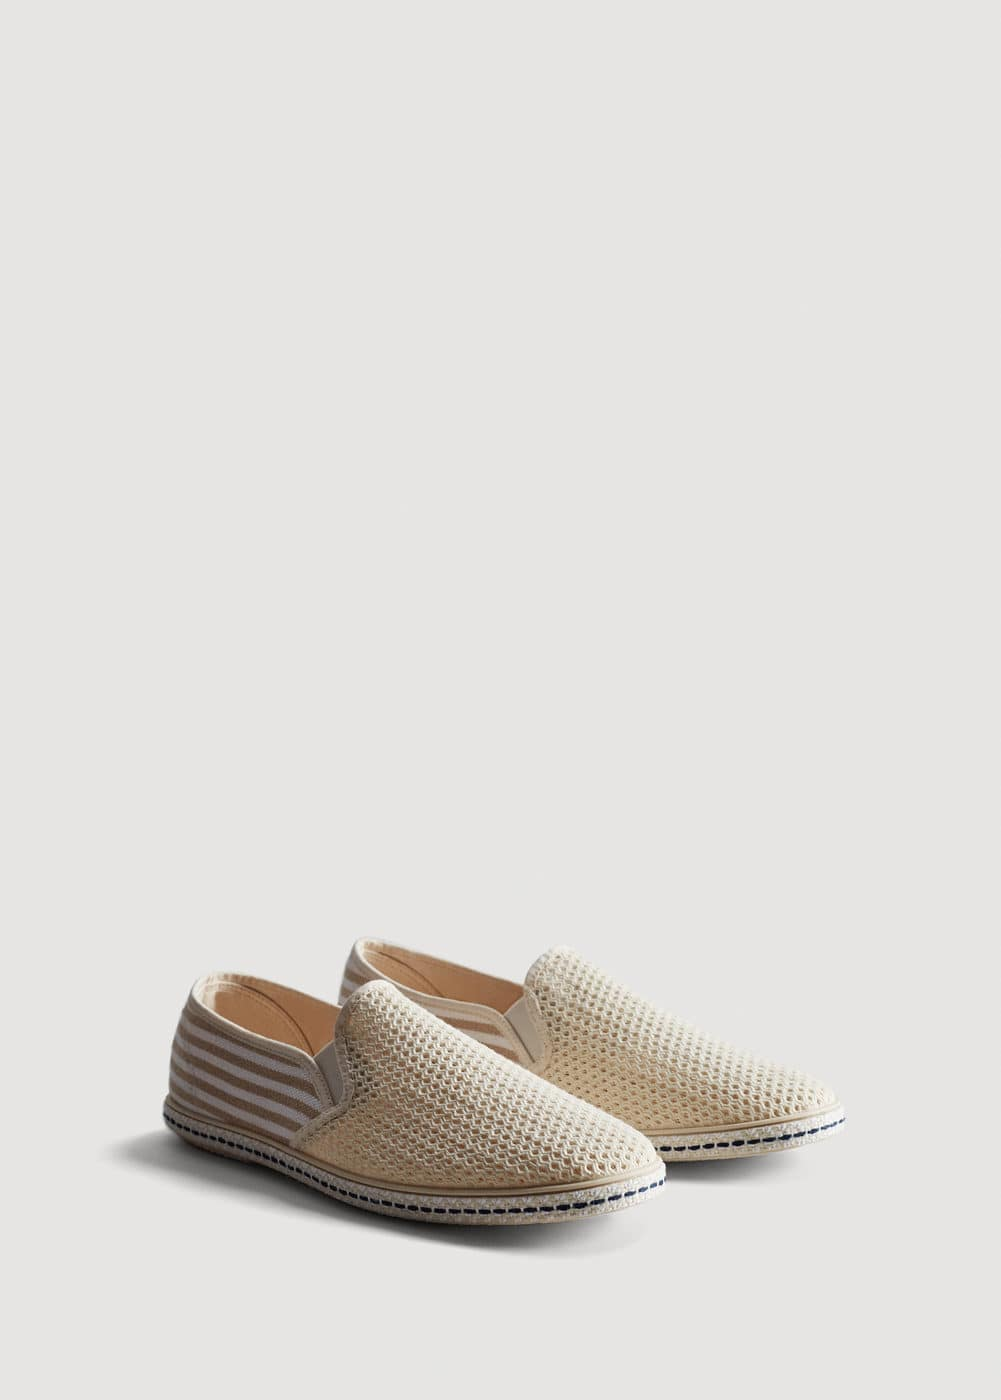 Men's Laser Cut Cotton Espadrille